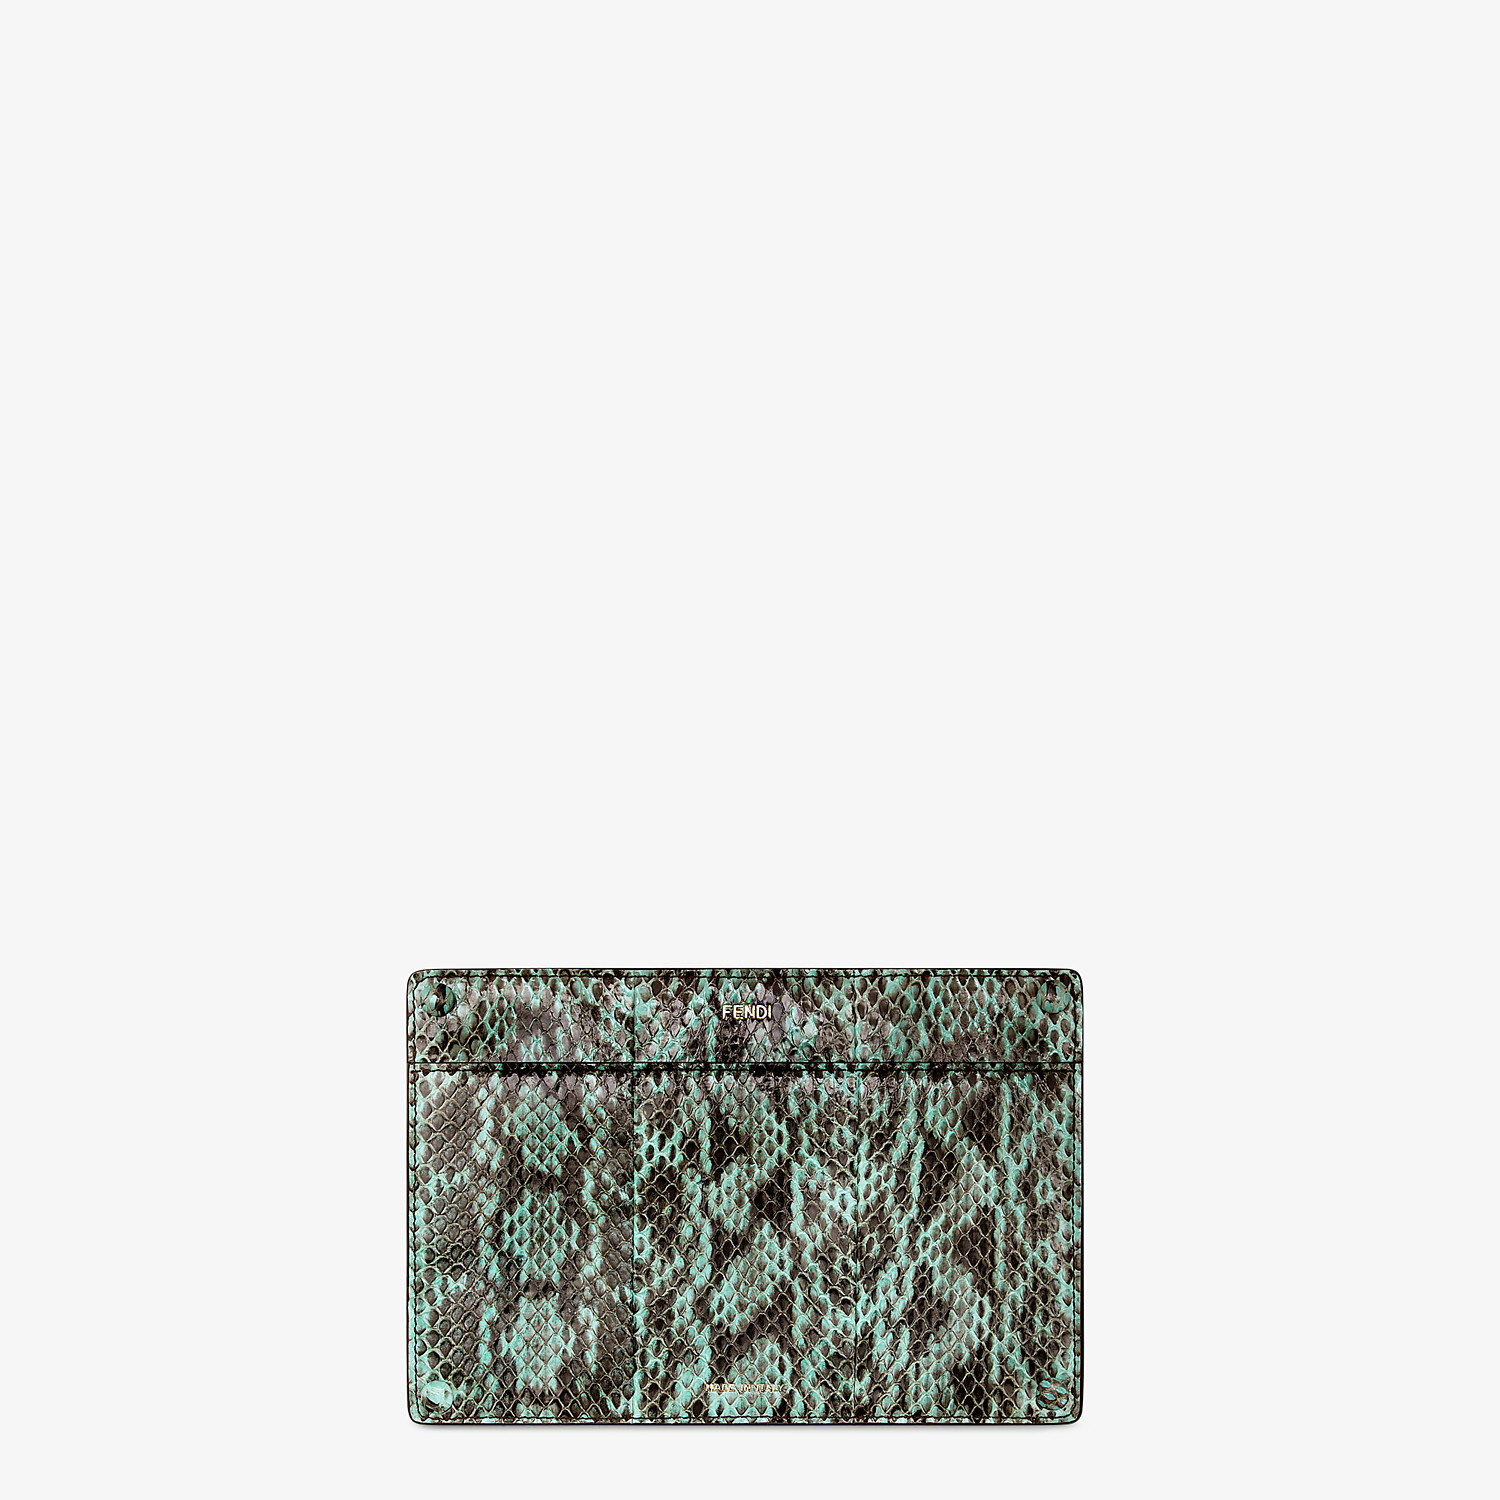 FENDI PEEKABOO POCKET - Accessory pocket in green elaphe - view 1 detail